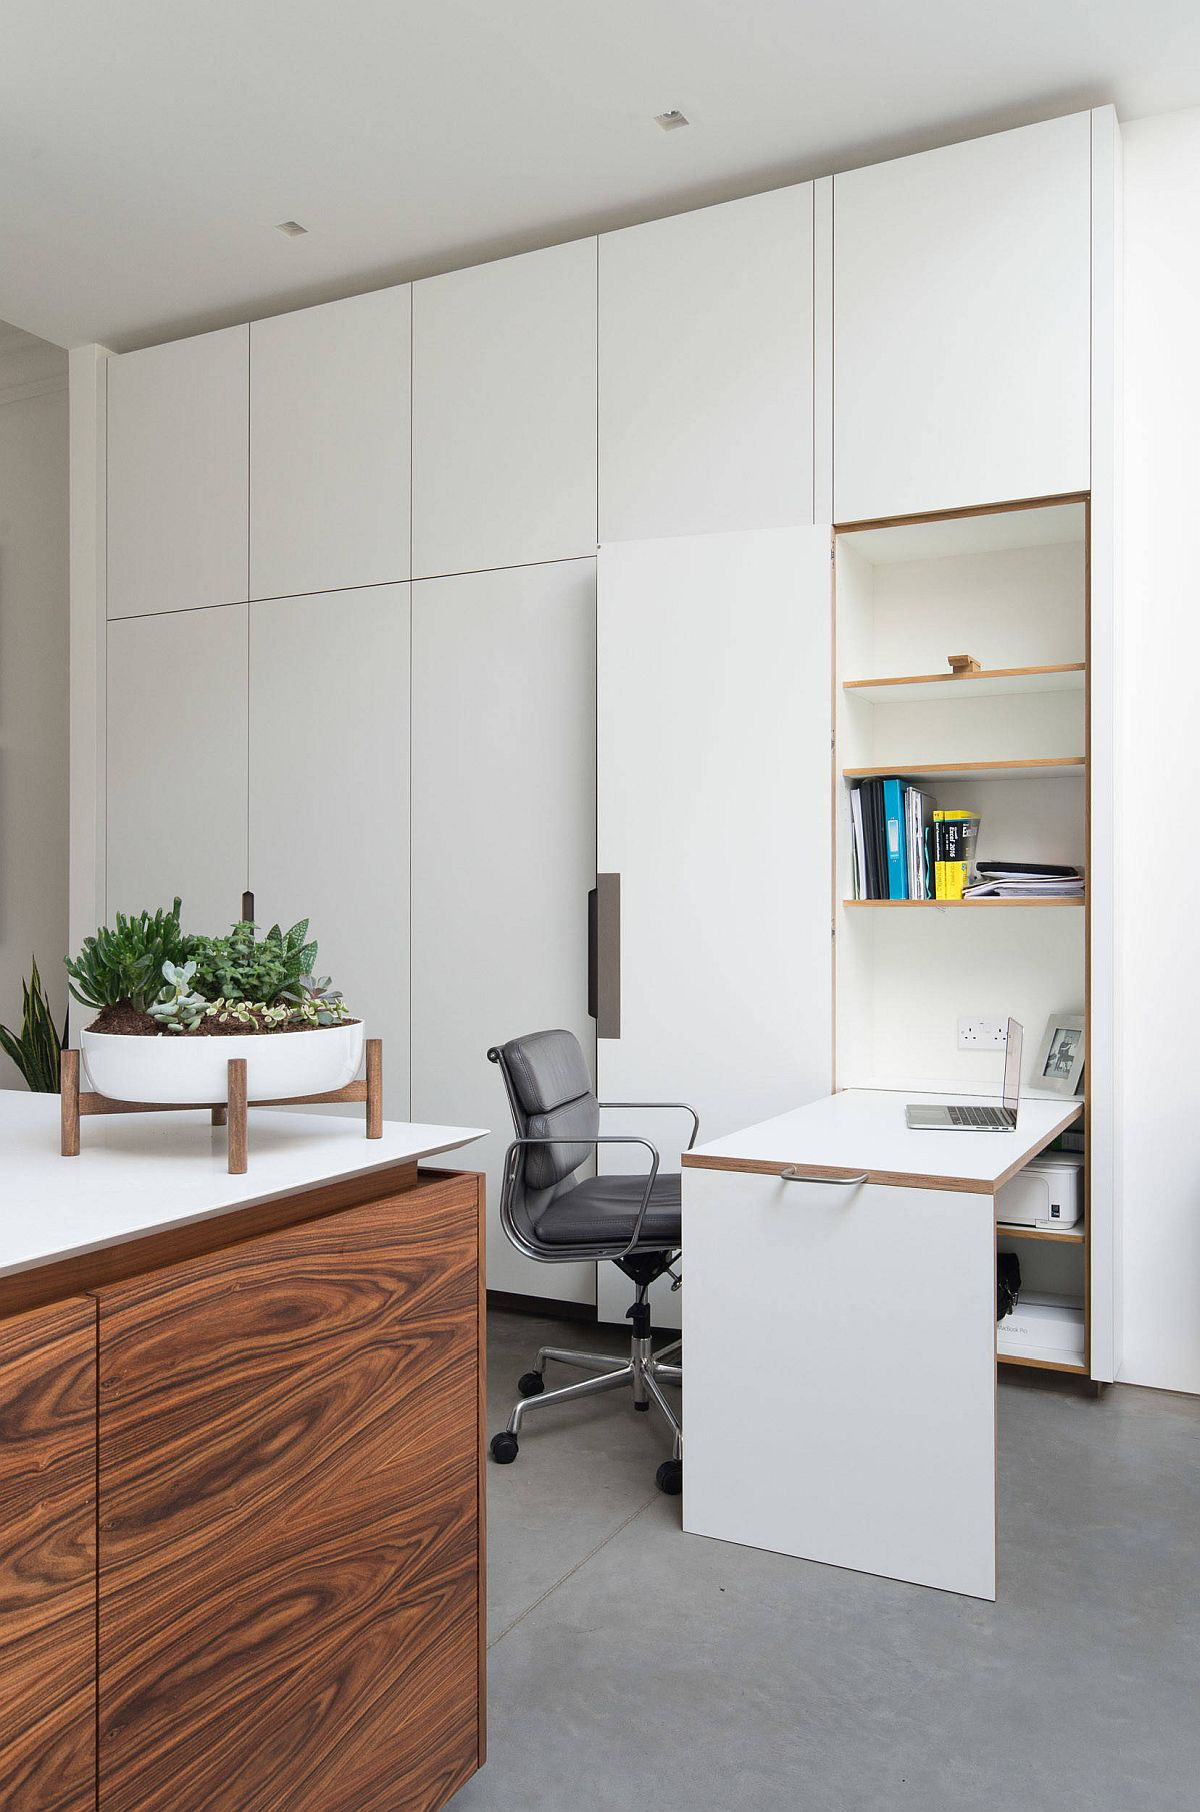 Innovative folding desk inside this London home office dissappears into the walls when not in use!